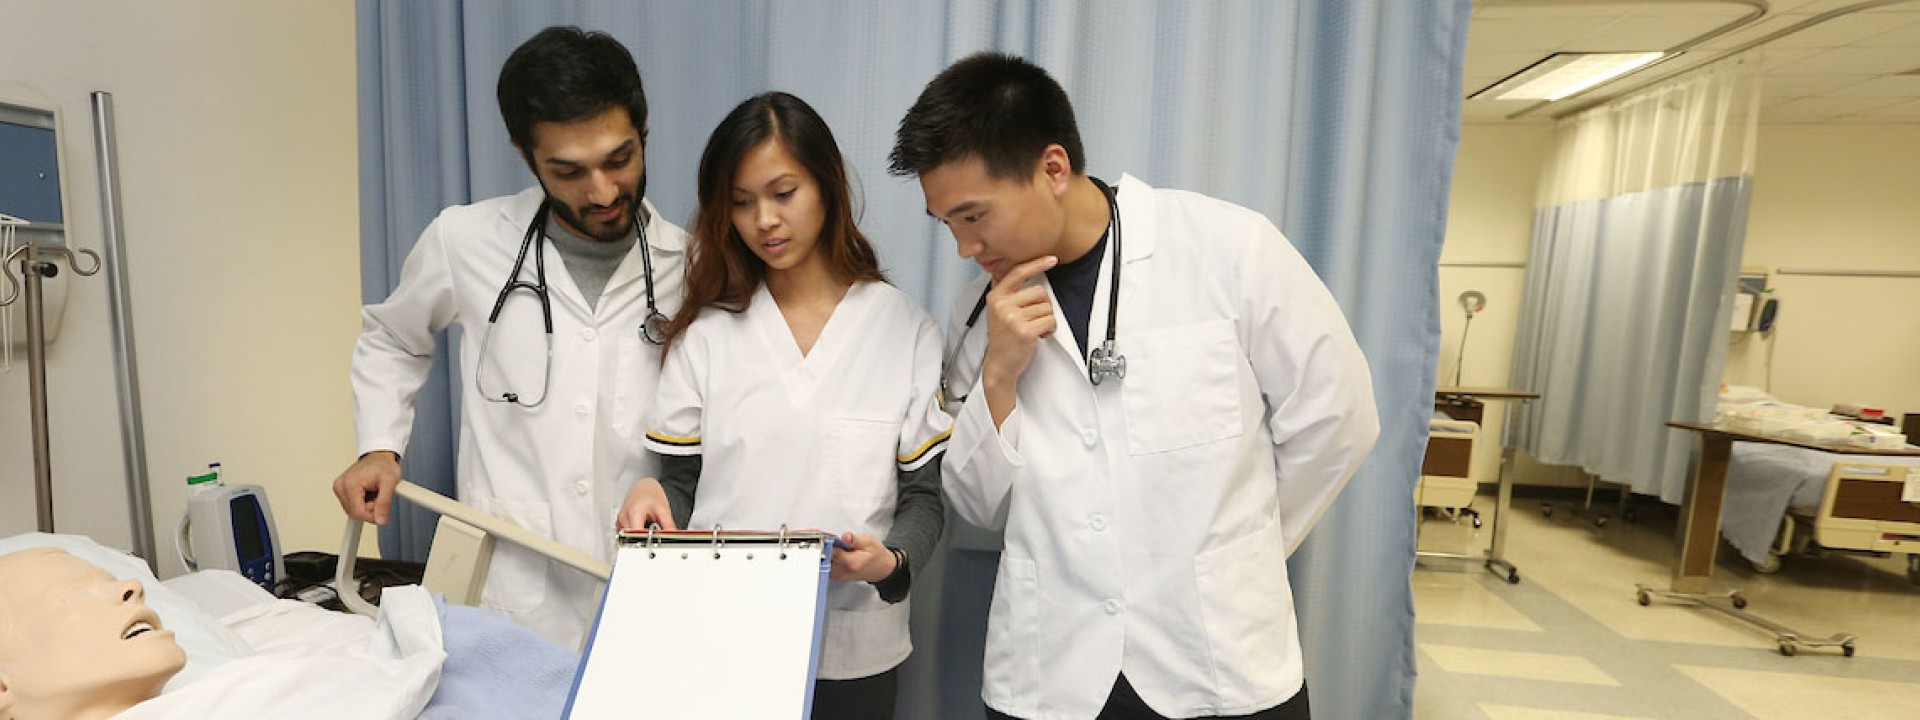 Image of three students in lab coats standing over an educational dummy.